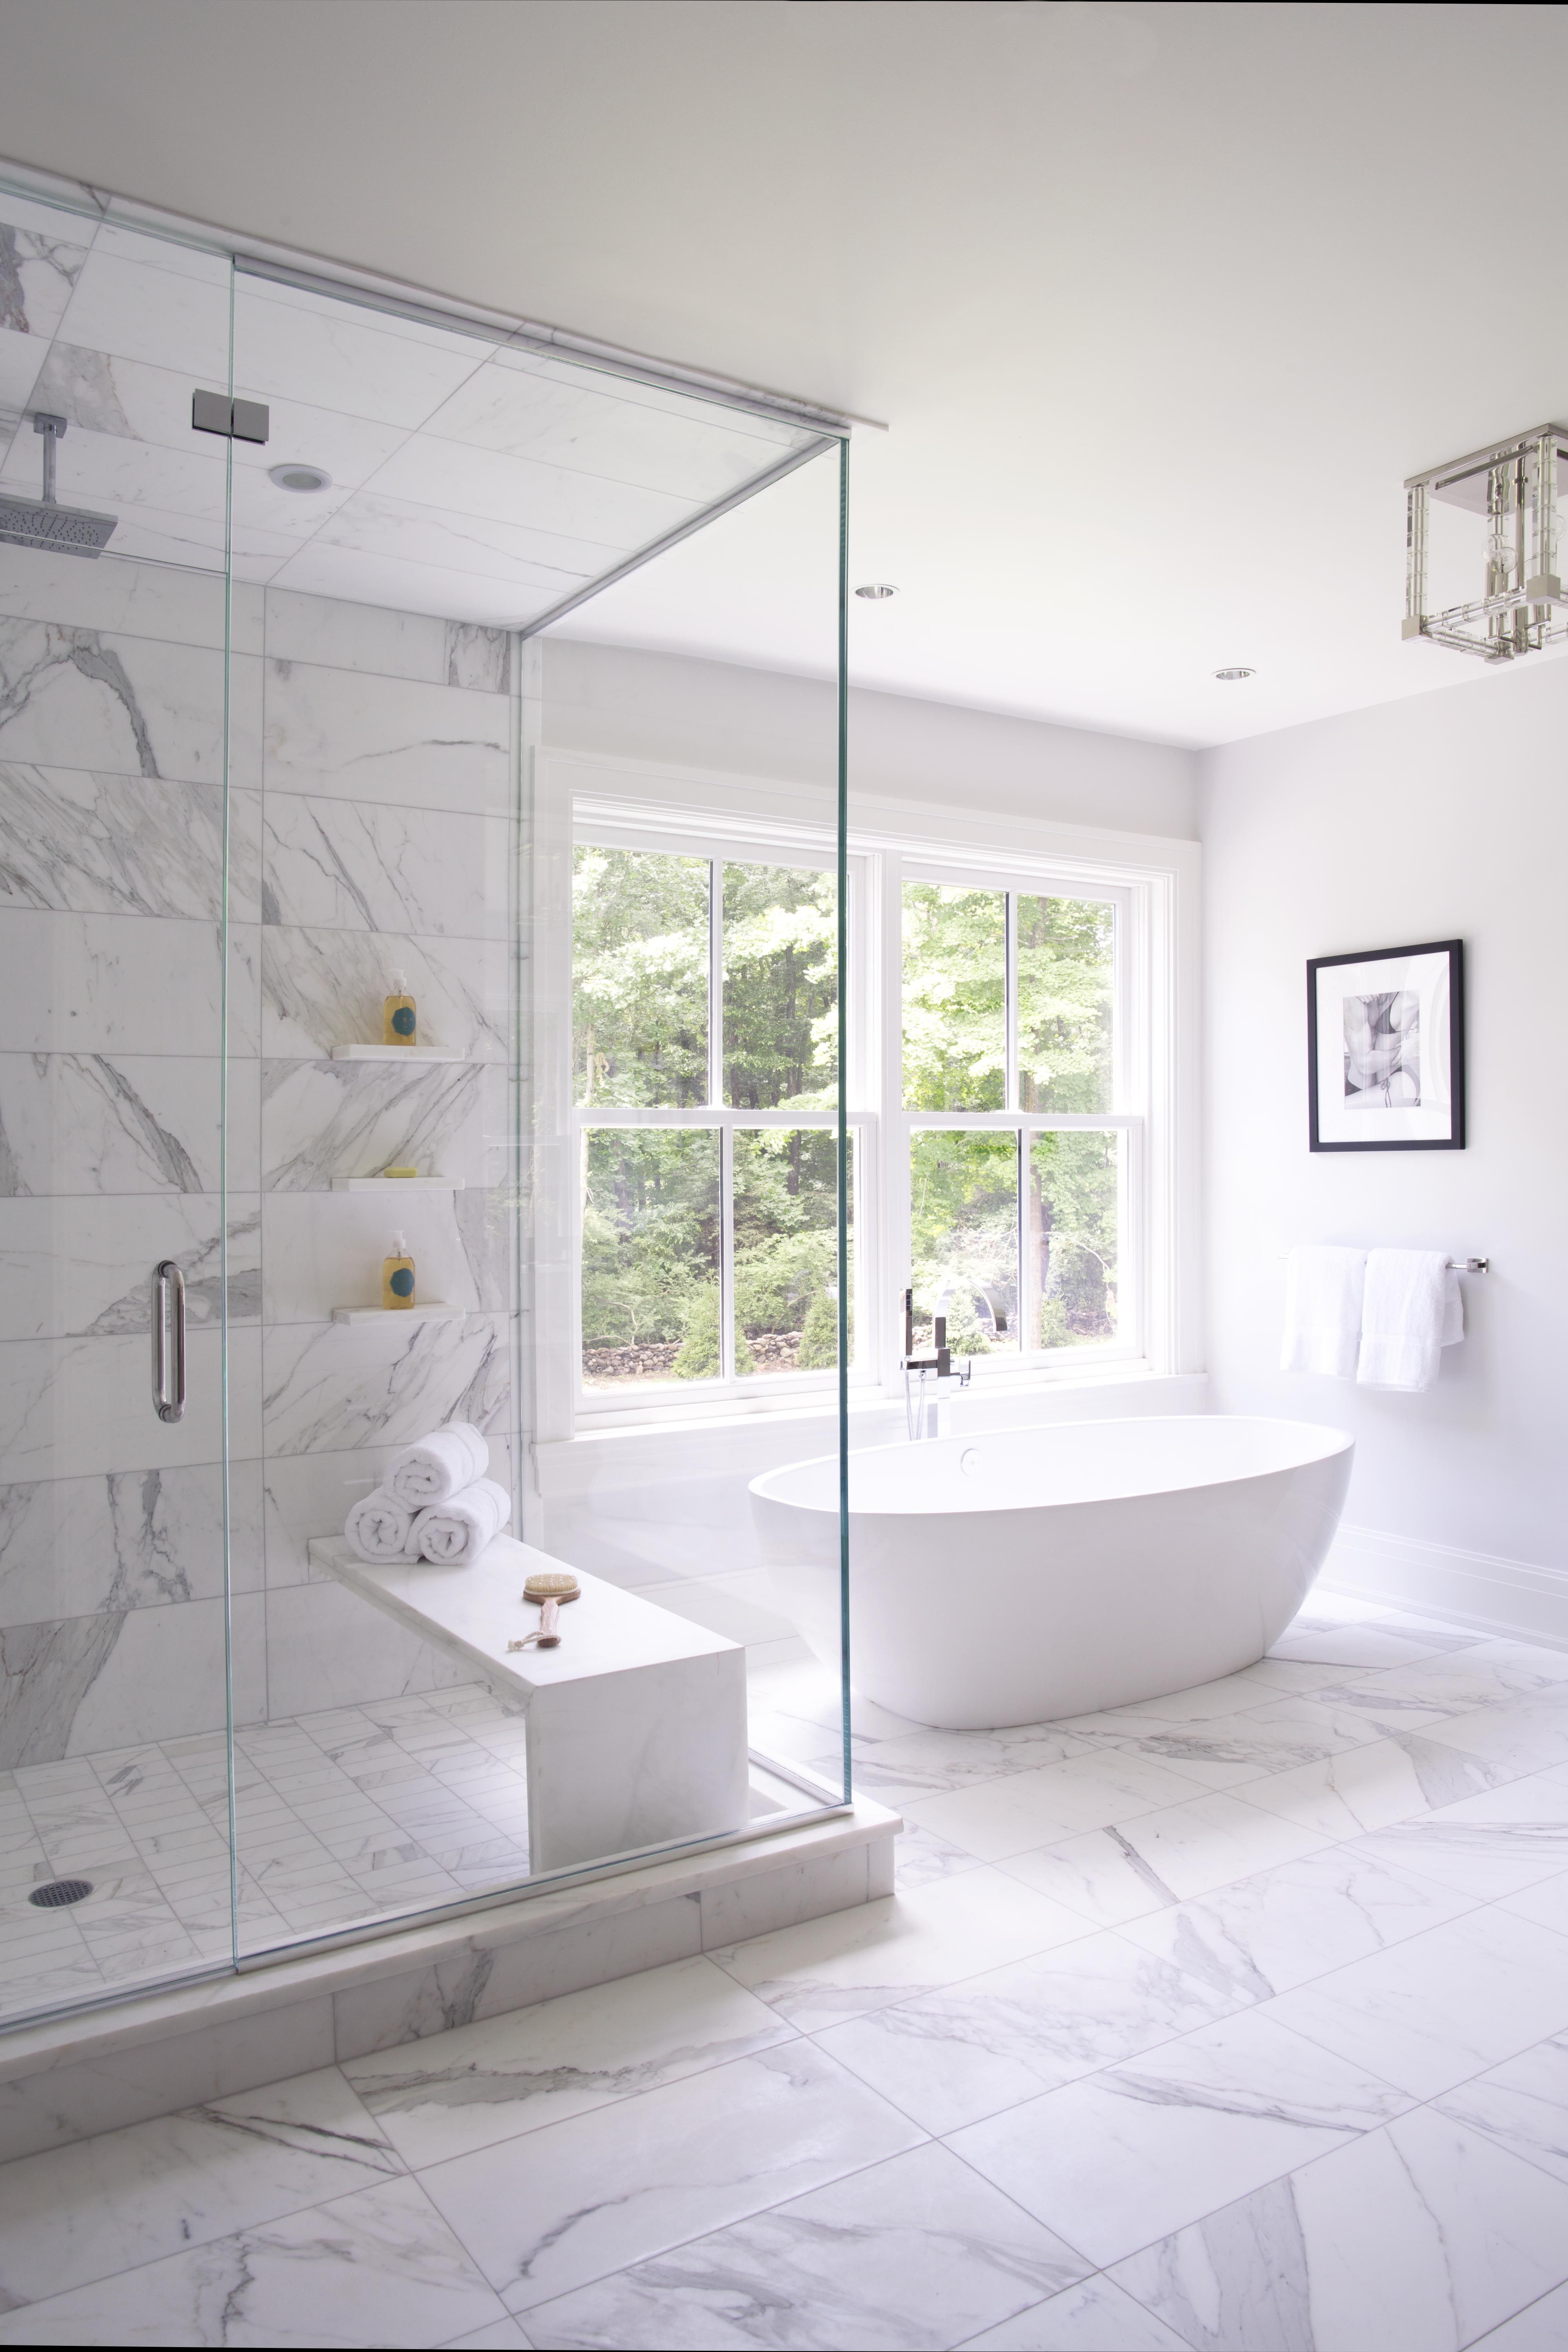 Few Things Define A Home Like A Bathroom What Does This Bathroom Say About This Home 2 Small Master Bathroom Bathroom Remodel Master Modern Master Bathroom